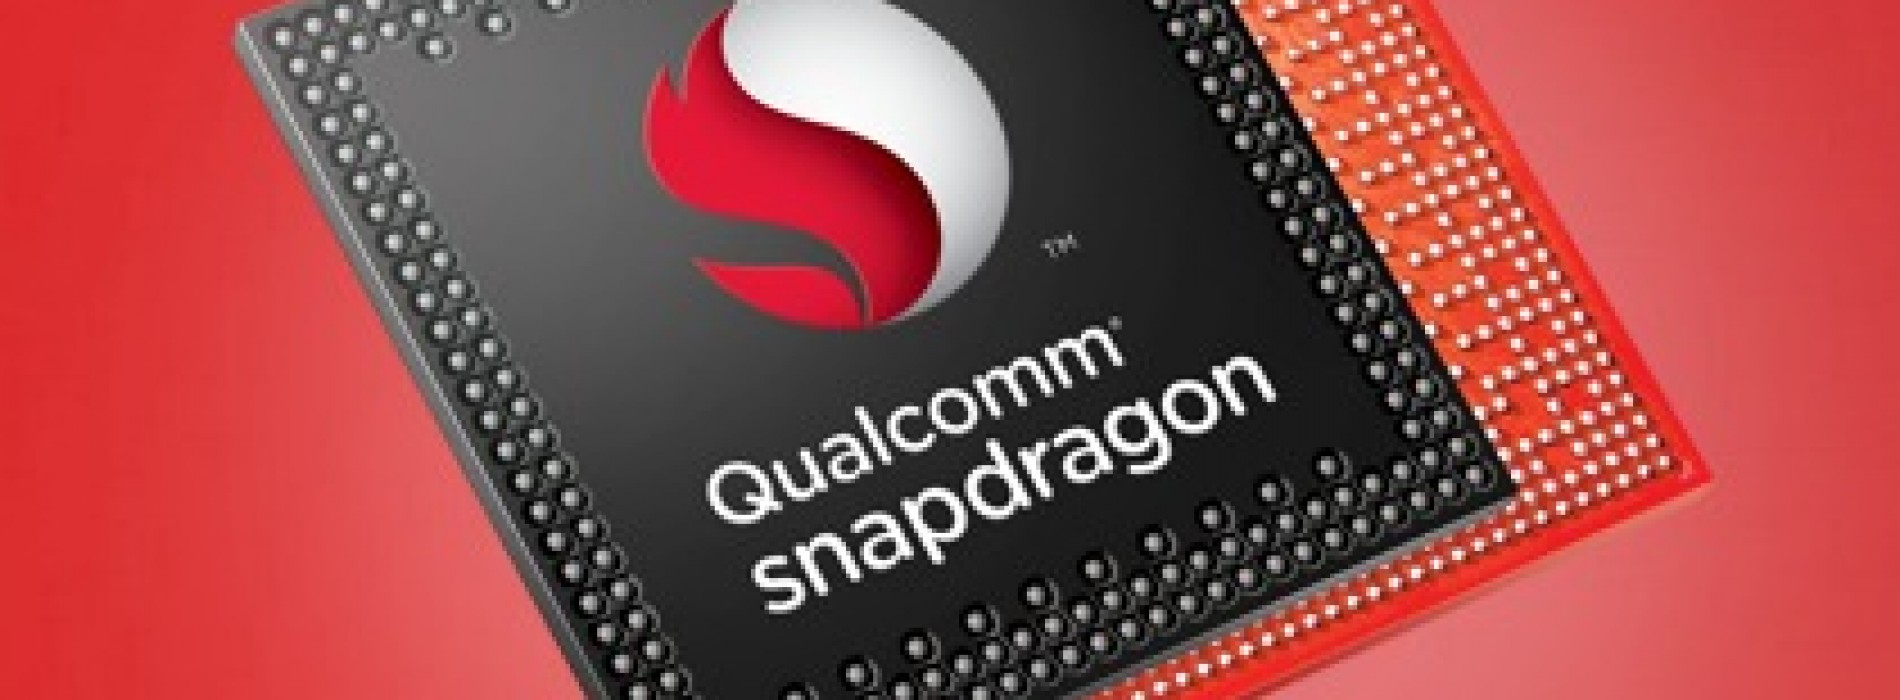 Qualcomm's Snapdragon 801 is no minor update from Snapdragon 800